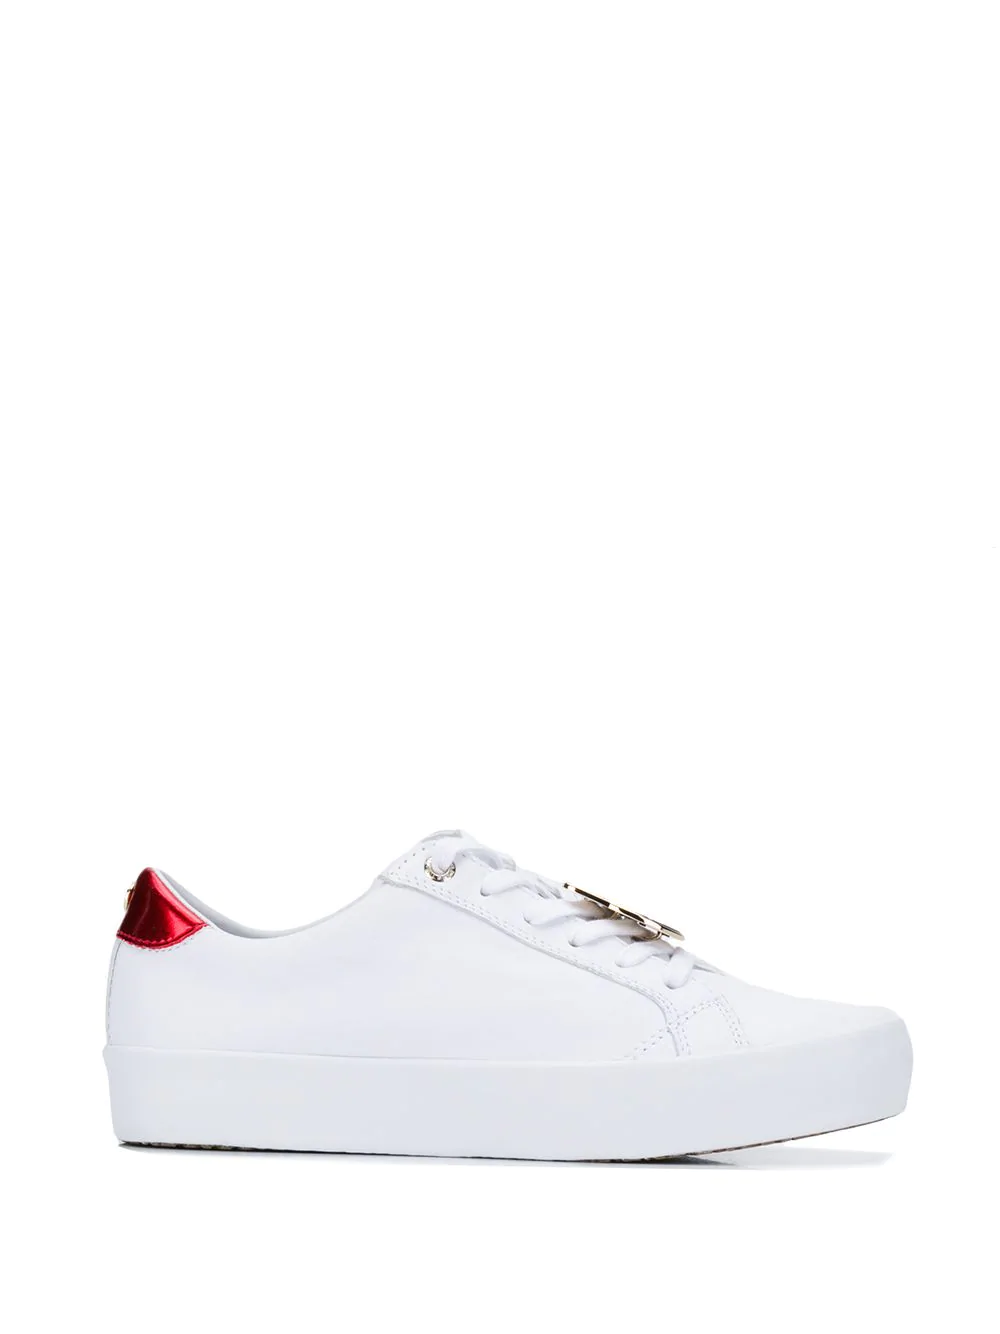 909229708 Tommy Hilfiger Lace-Up Sneakers - White